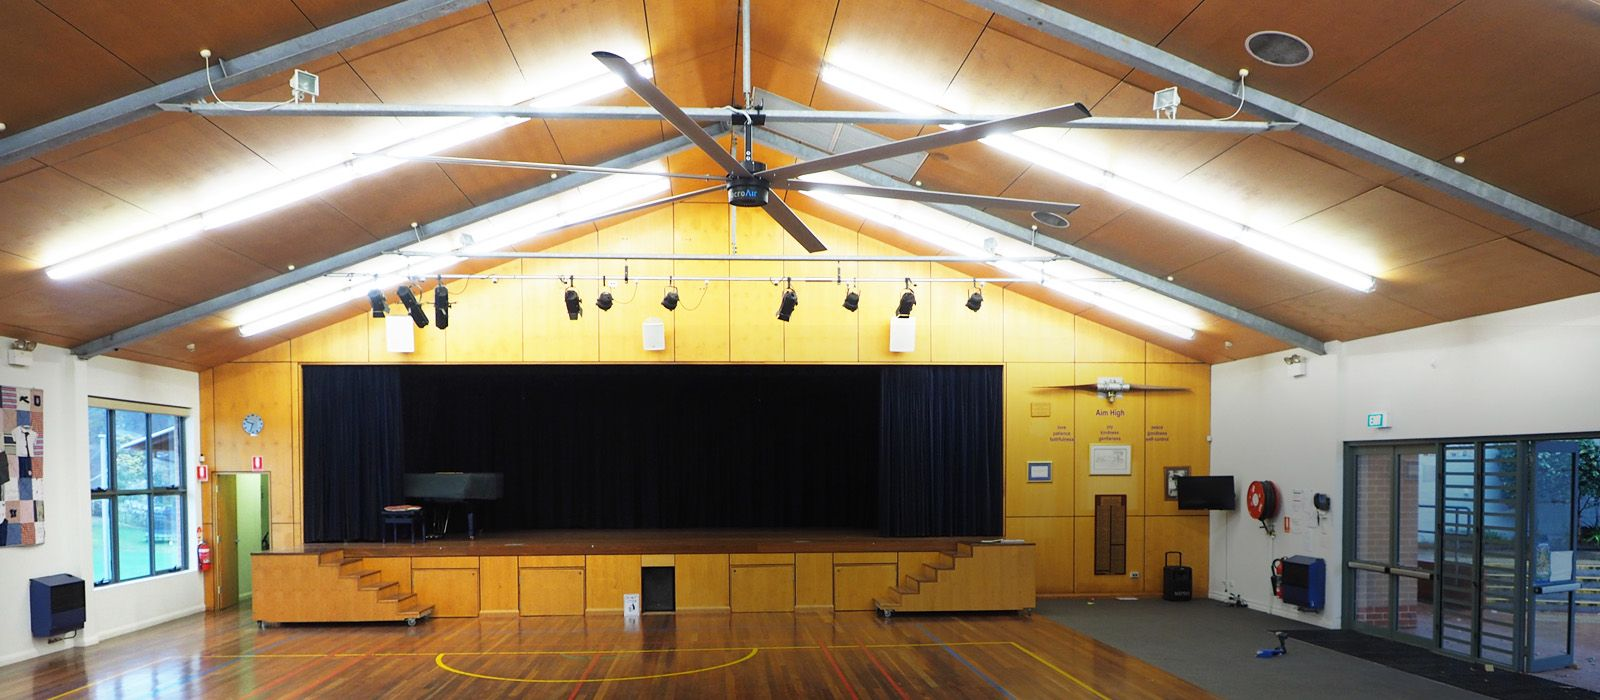 big fan install loquatvalleyschoolhall